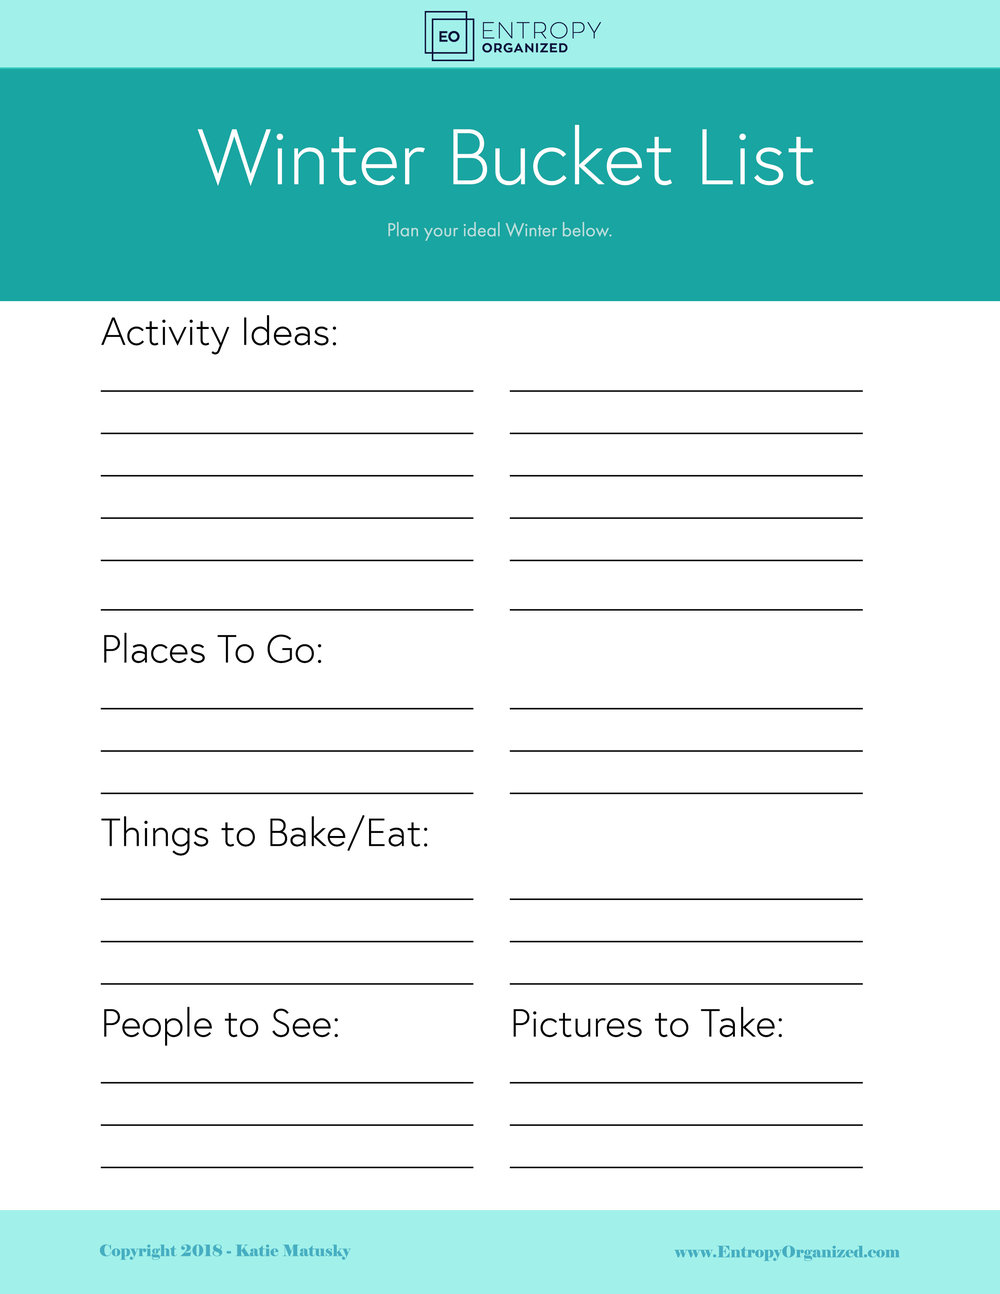 Winter Bucket List.jpg